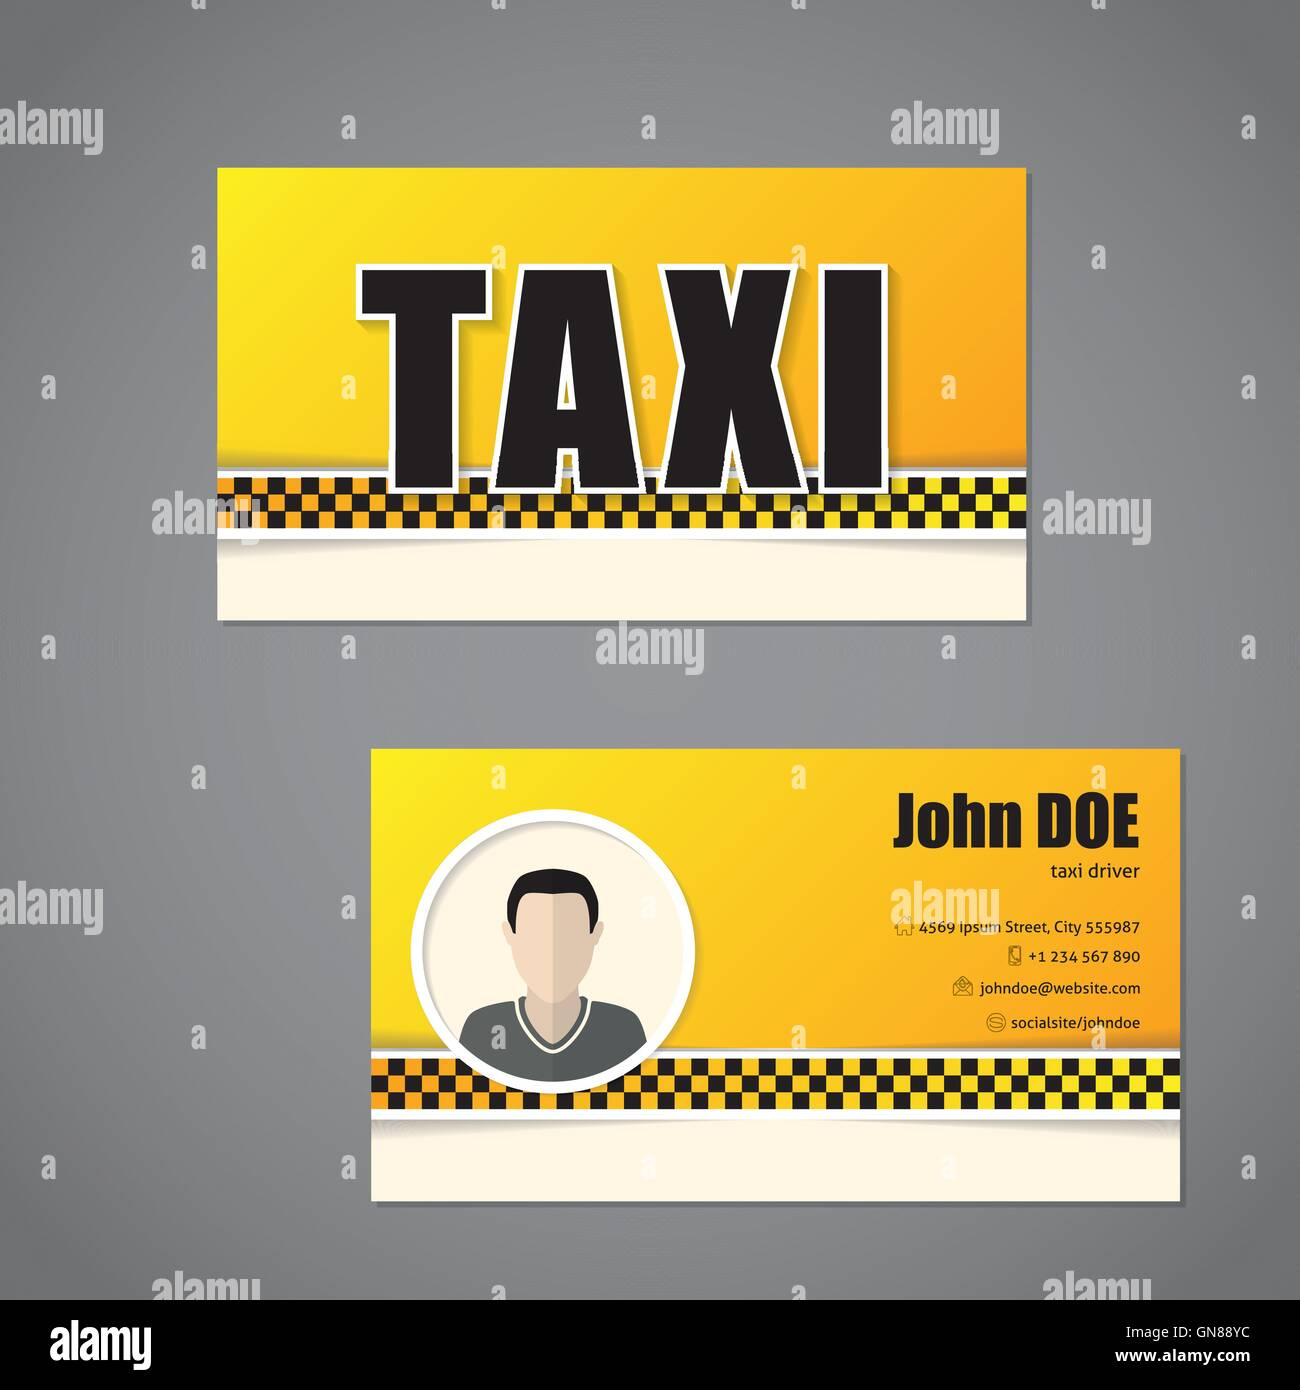 taxi business card template with driver photo stock vector. Black Bedroom Furniture Sets. Home Design Ideas